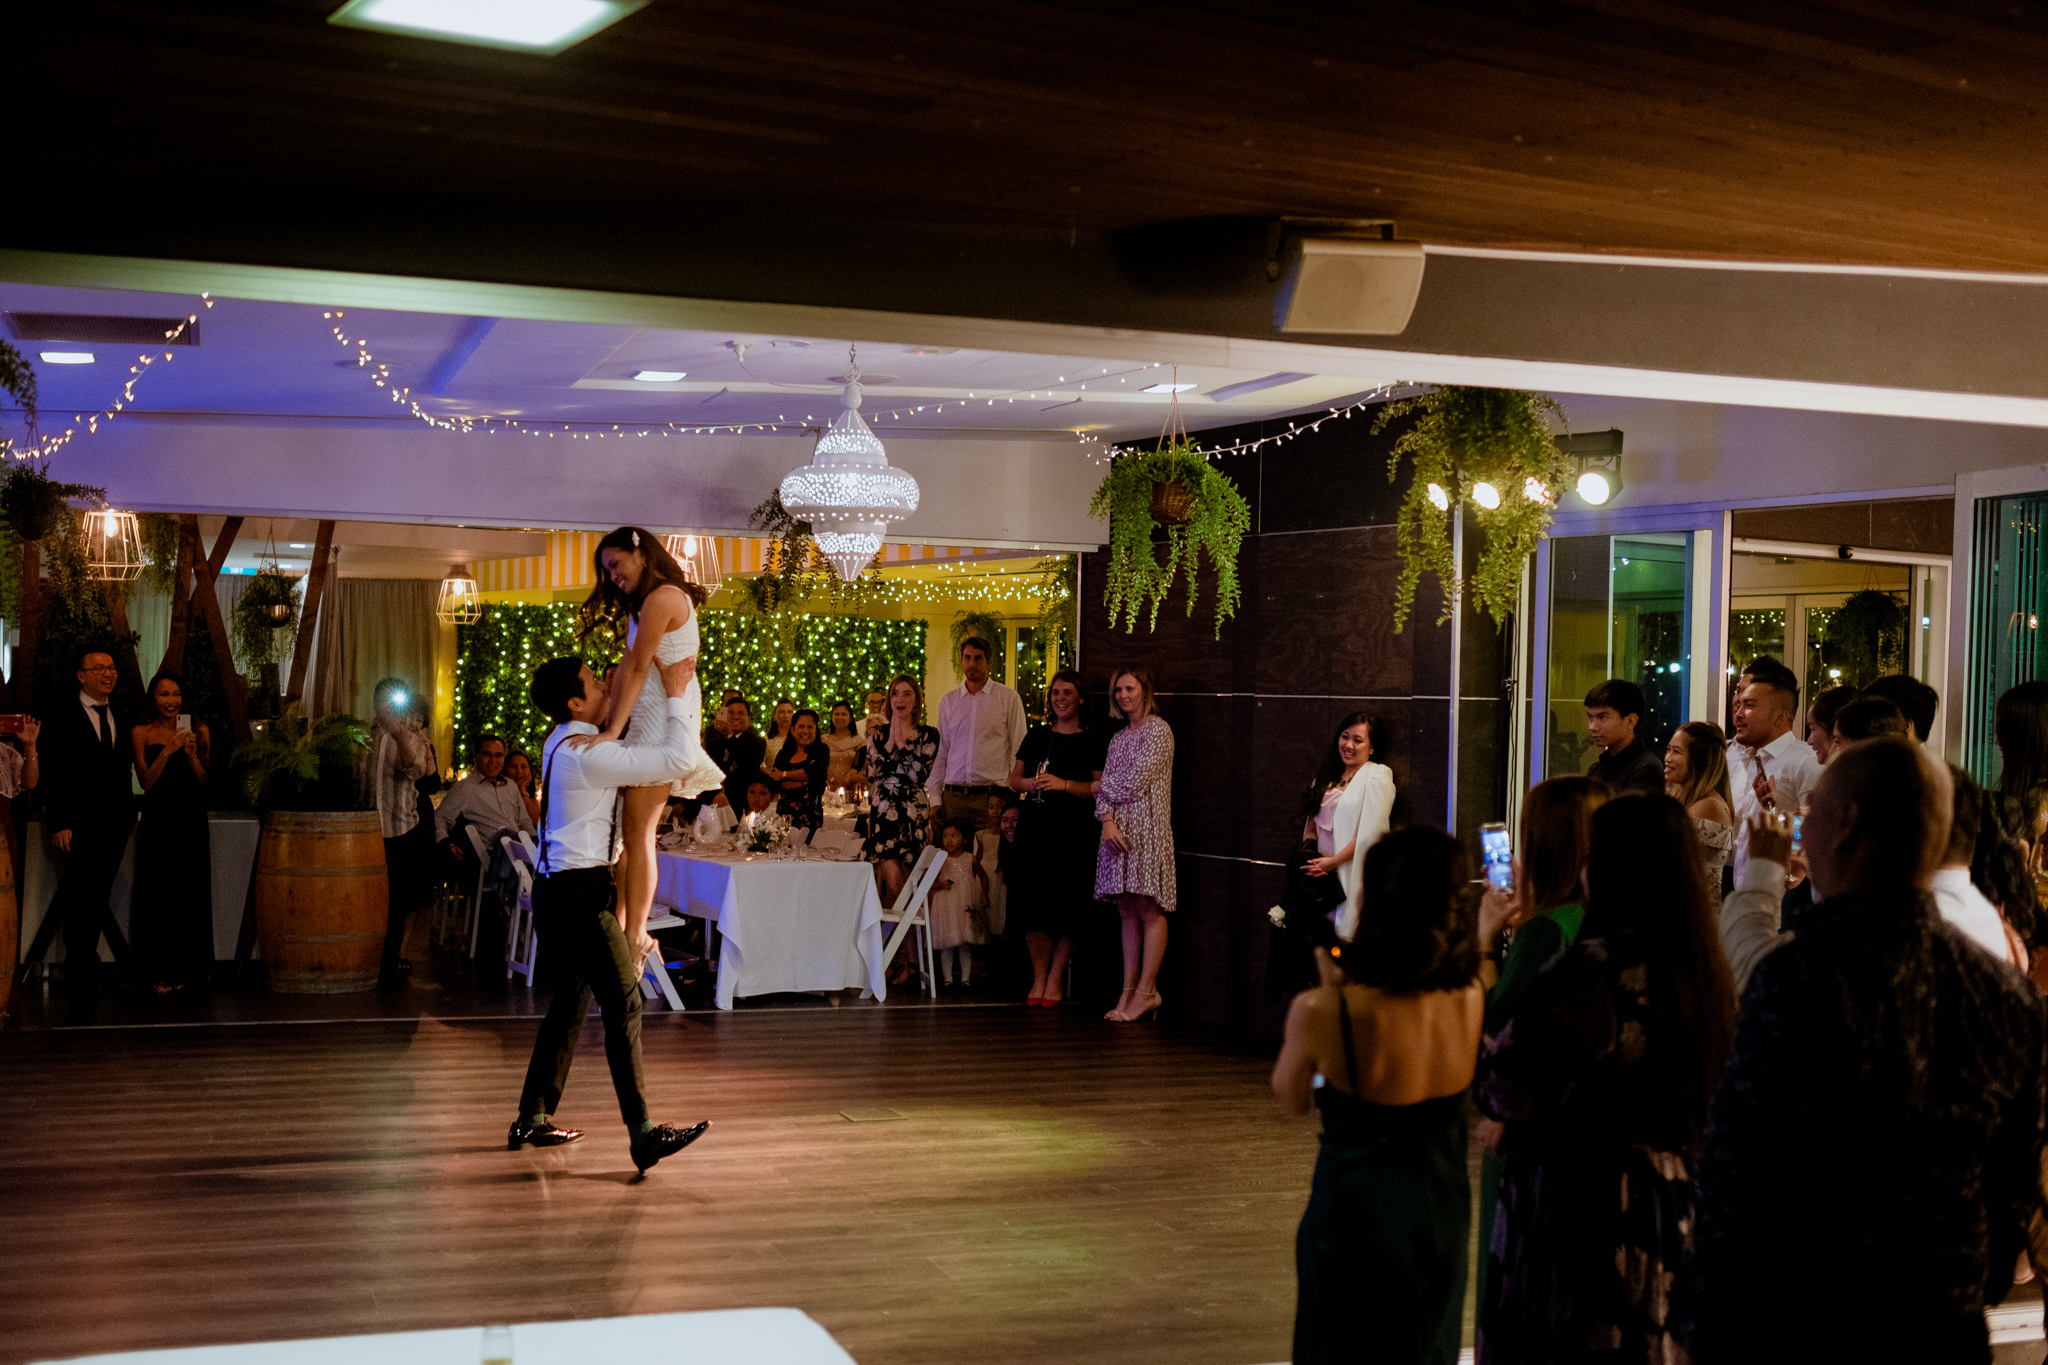 A newlywed couple performs a dance at Northshore Harbour, Brisbane